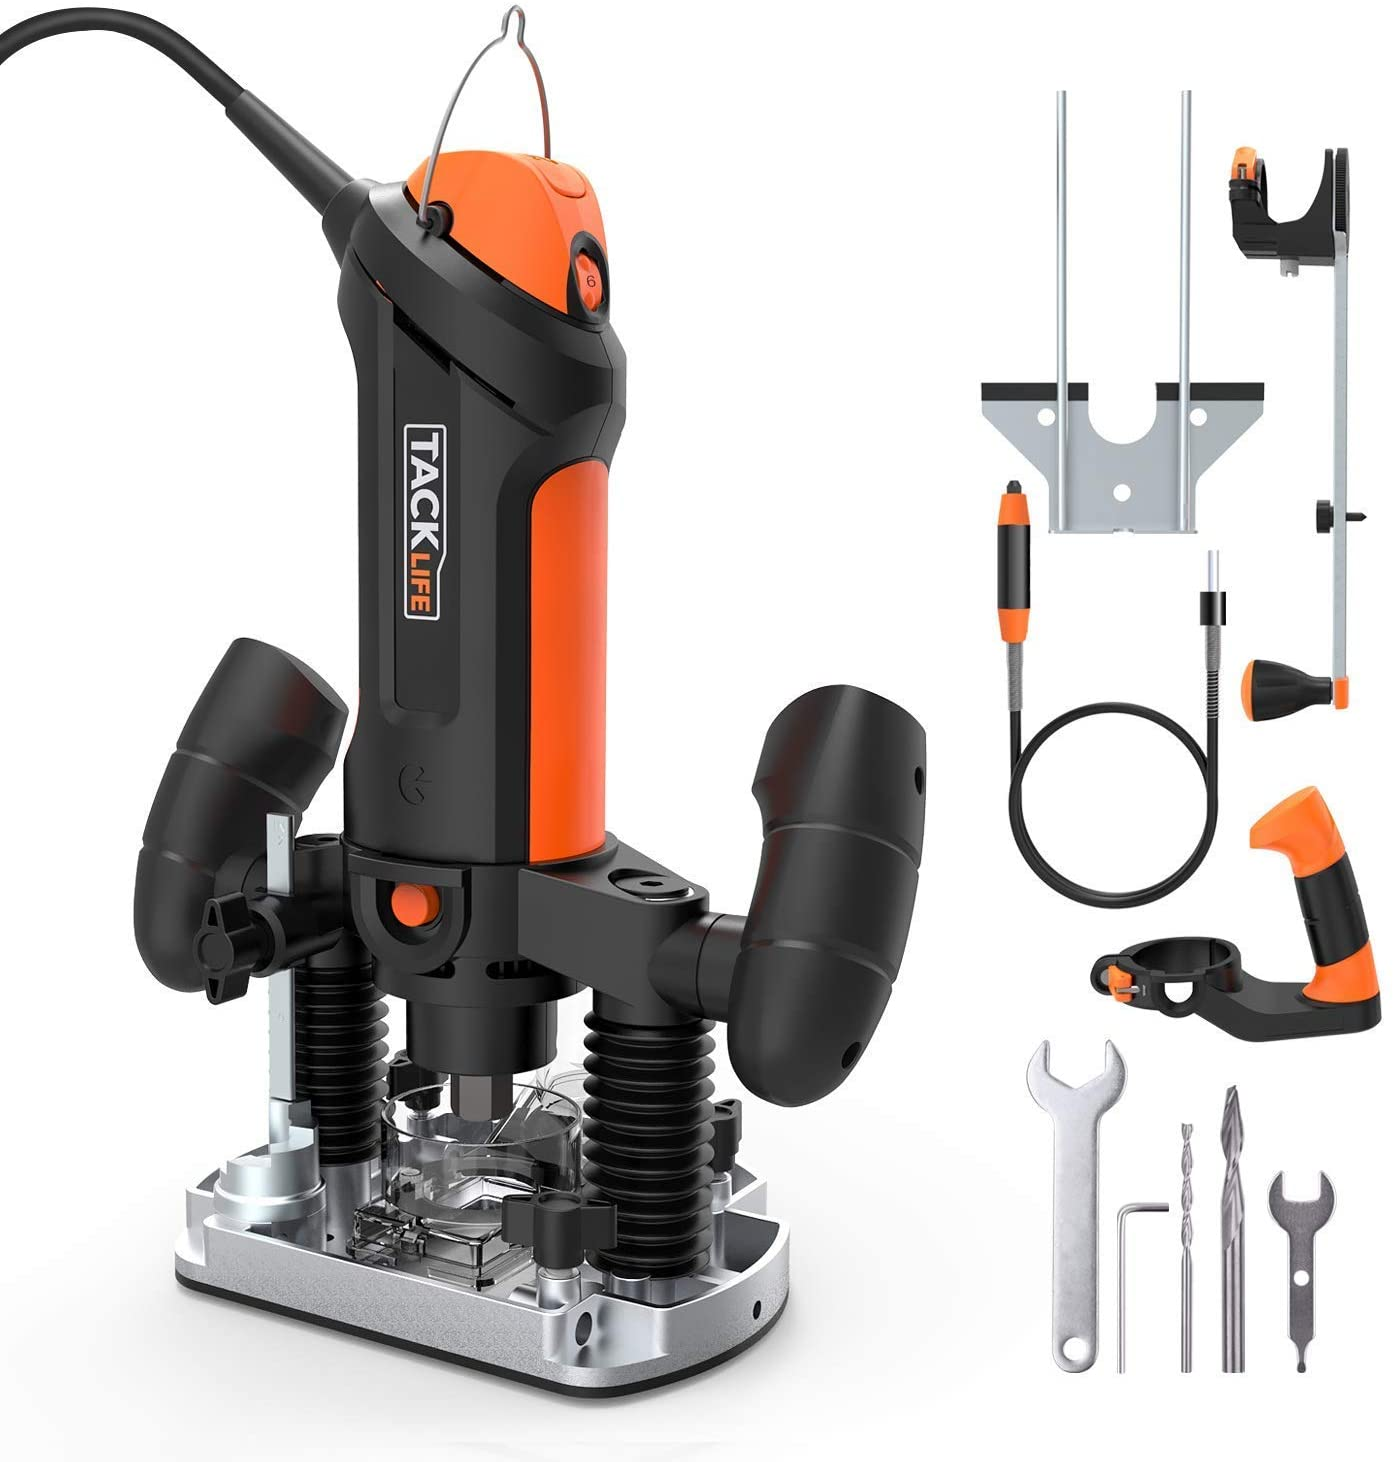 TACKLIFE Plunge Compact Router Kit